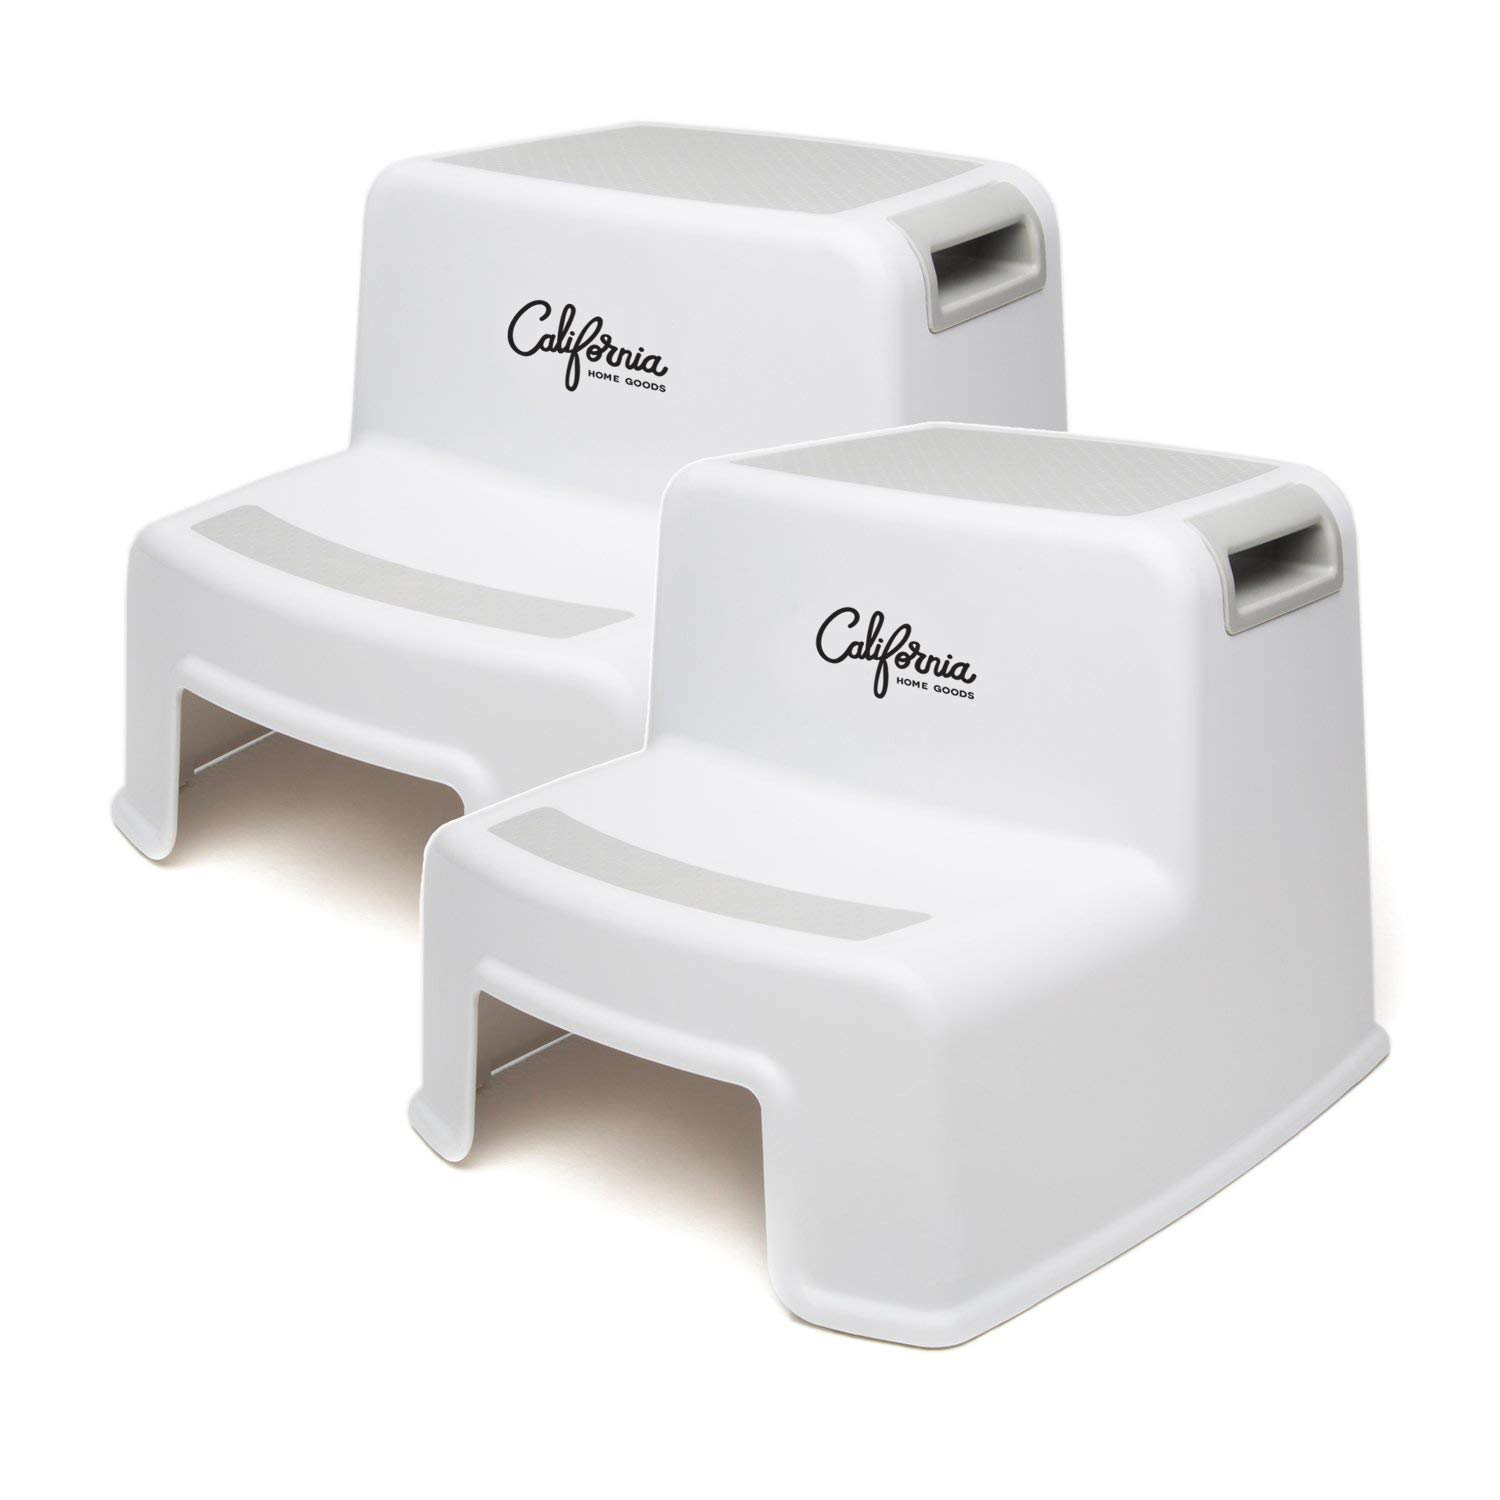 Child Step Stool (2 Pack), 2 Step Stool for Kids, Sturdy Plastic Step Stool for Kids Sink Use & Toilet Training, Toddler Step Stool Bathroom & Kitchen, Slip Resistant Dual Step Children Step Stools by California Home Goods